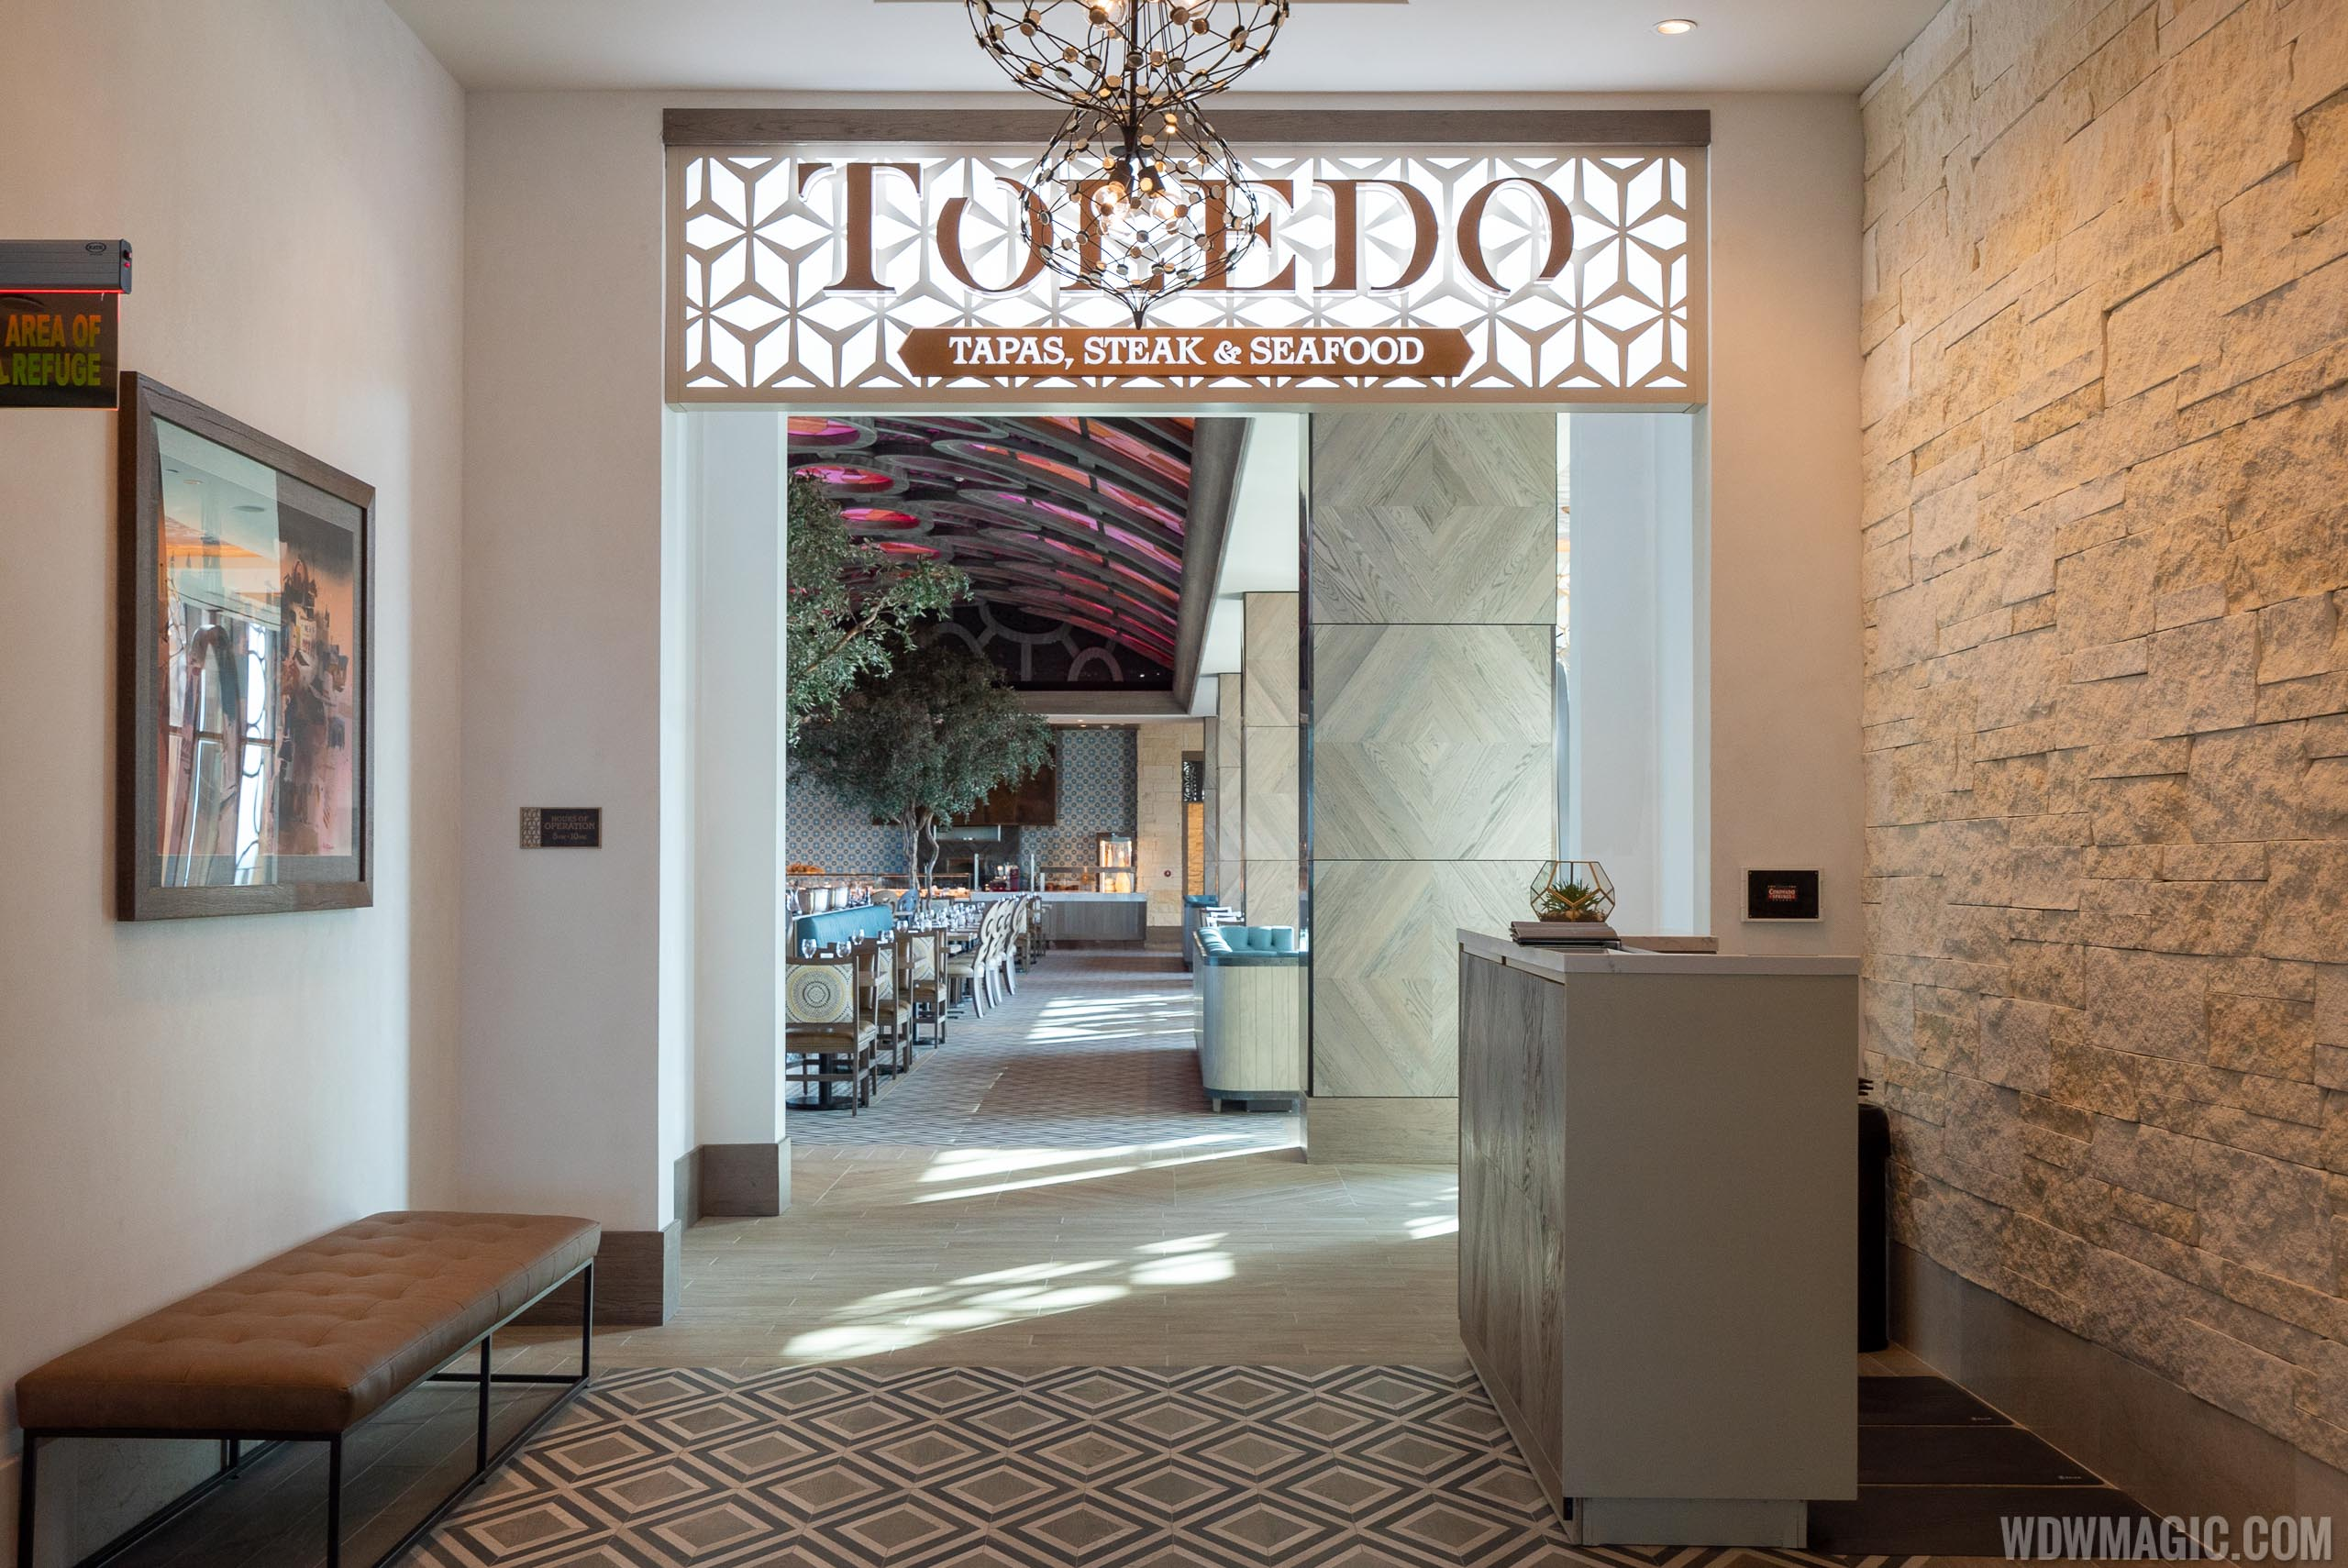 Check-in at podiums will no longer be required at table service restaurants